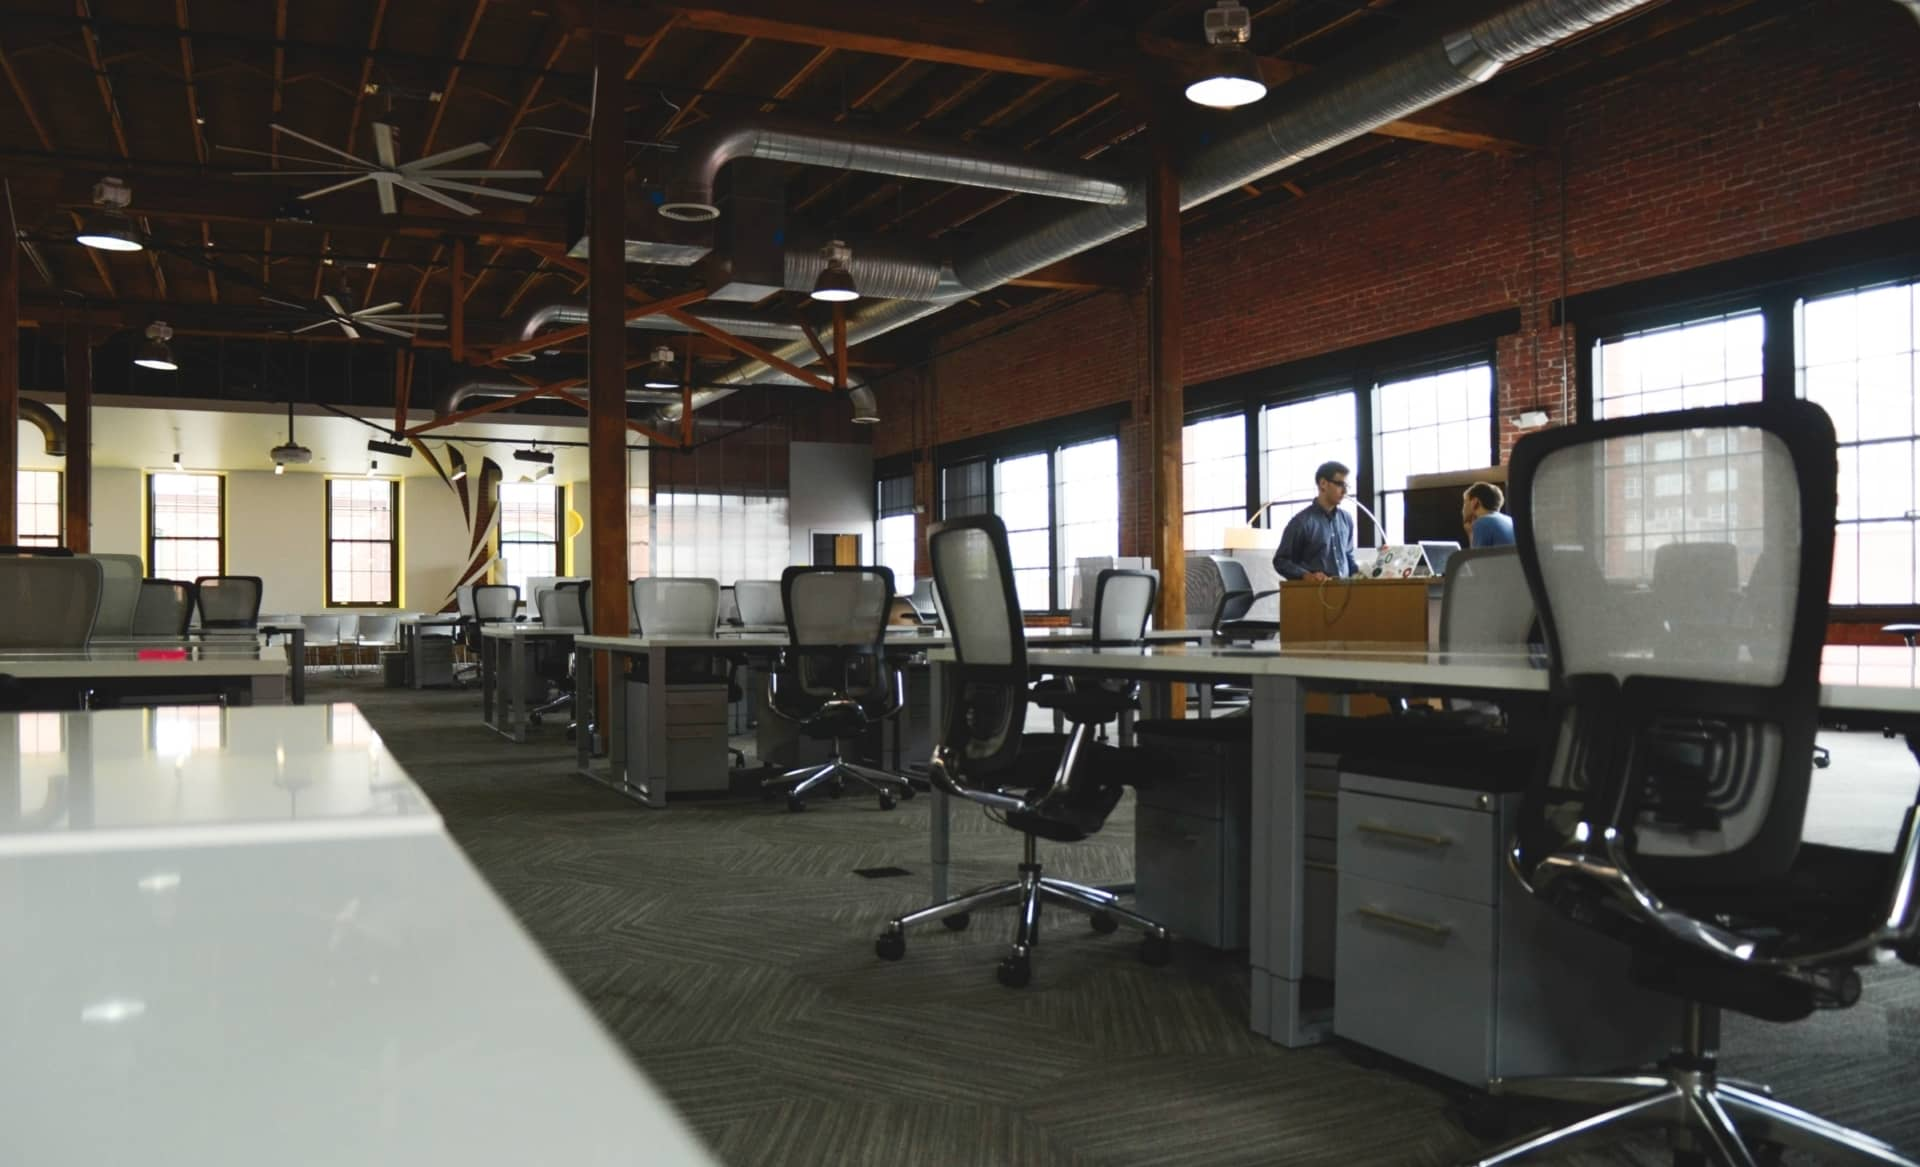 Open office concept to encourage productivity